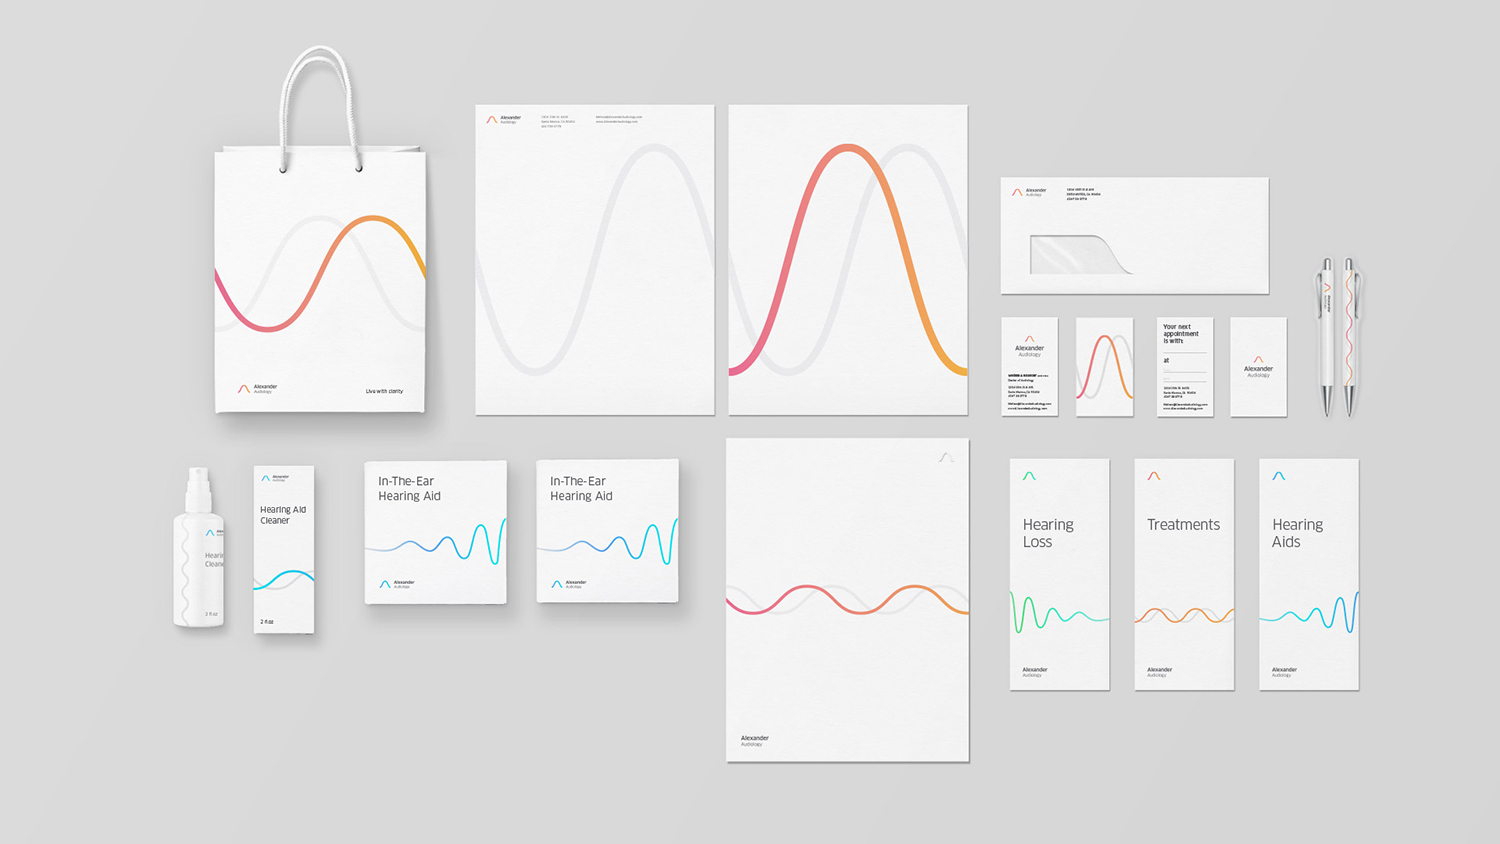 Alexander-Audiology-brand-stationary